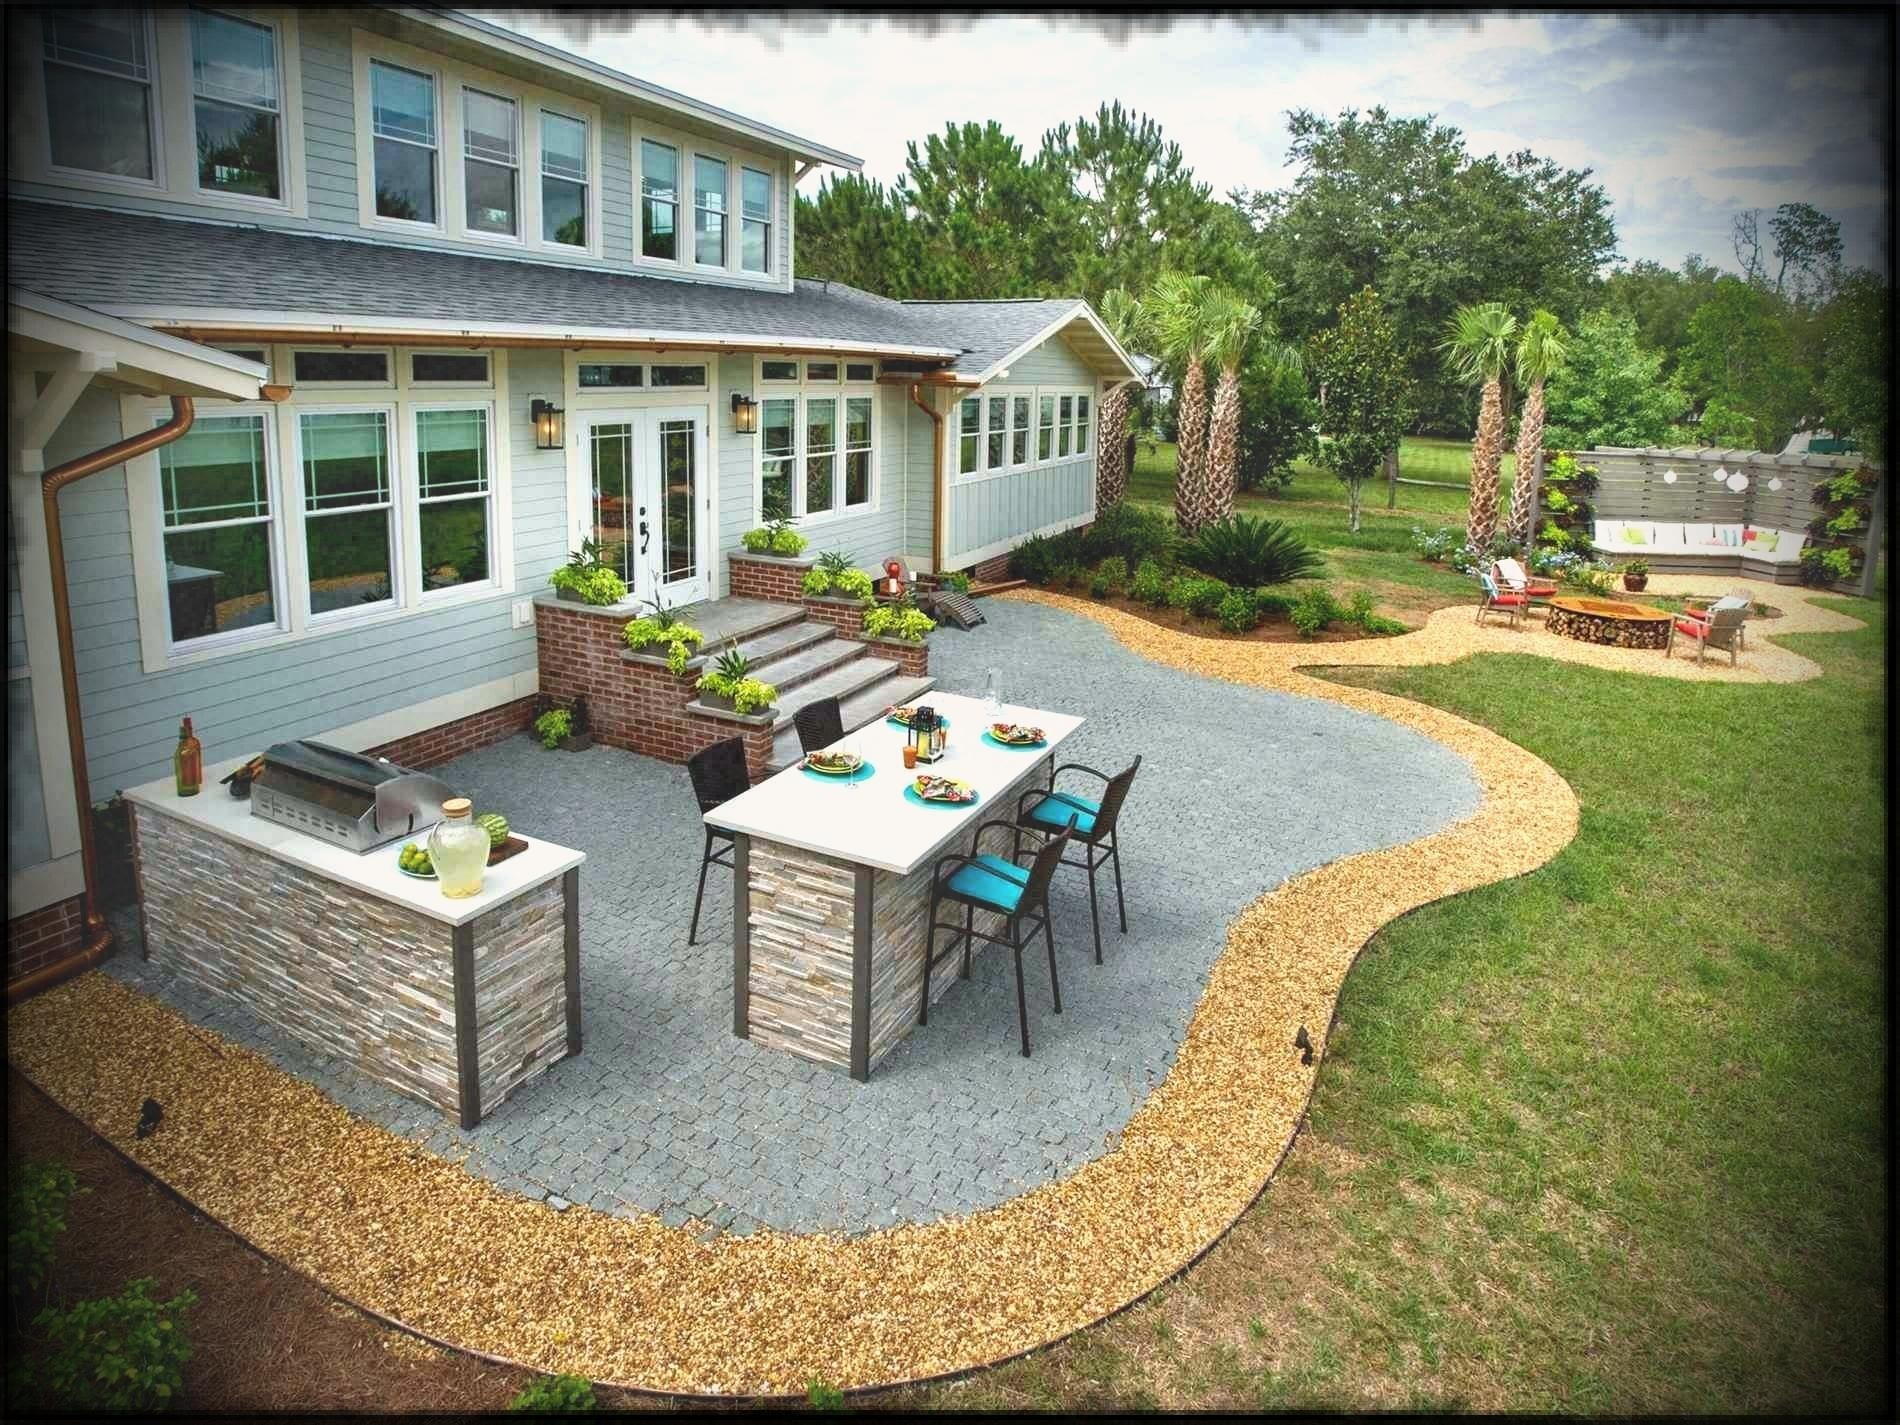 10 Ideal Diy Backyard Ideas On A Budget backyard small diy patio ideas design and concrete on a budget 1 2020